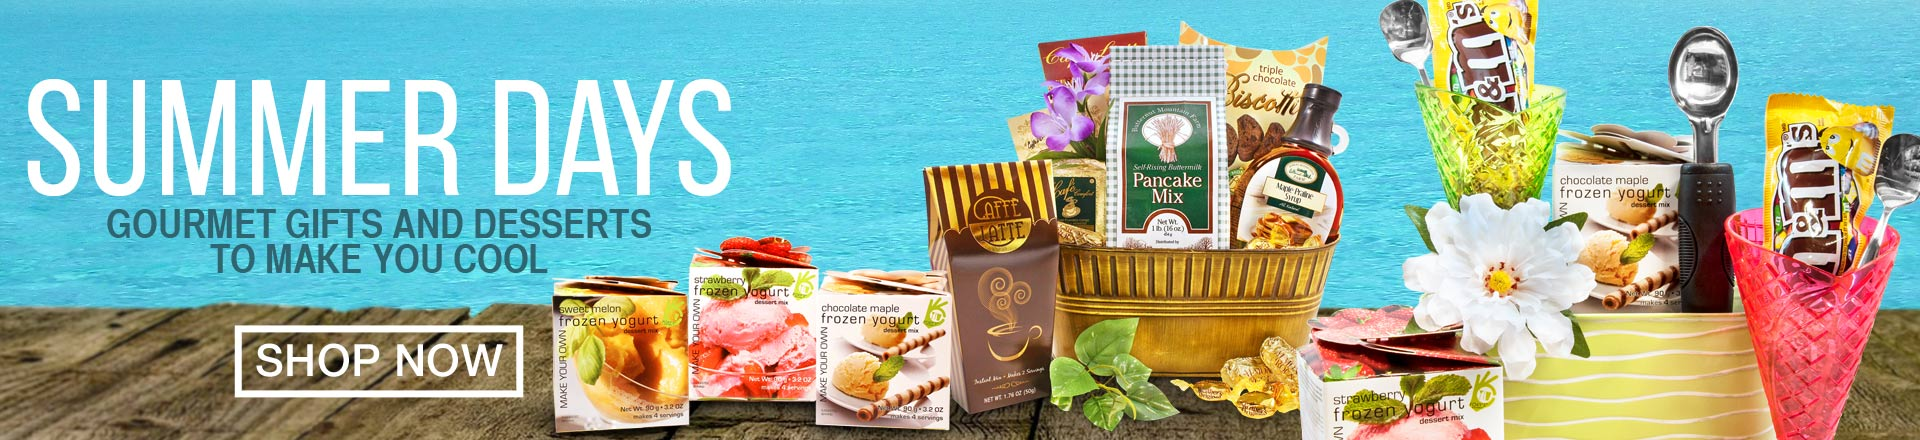 Summer Gifts and Gift Baskets, Flowers, Cakes by Gourmet Gift Basket Store